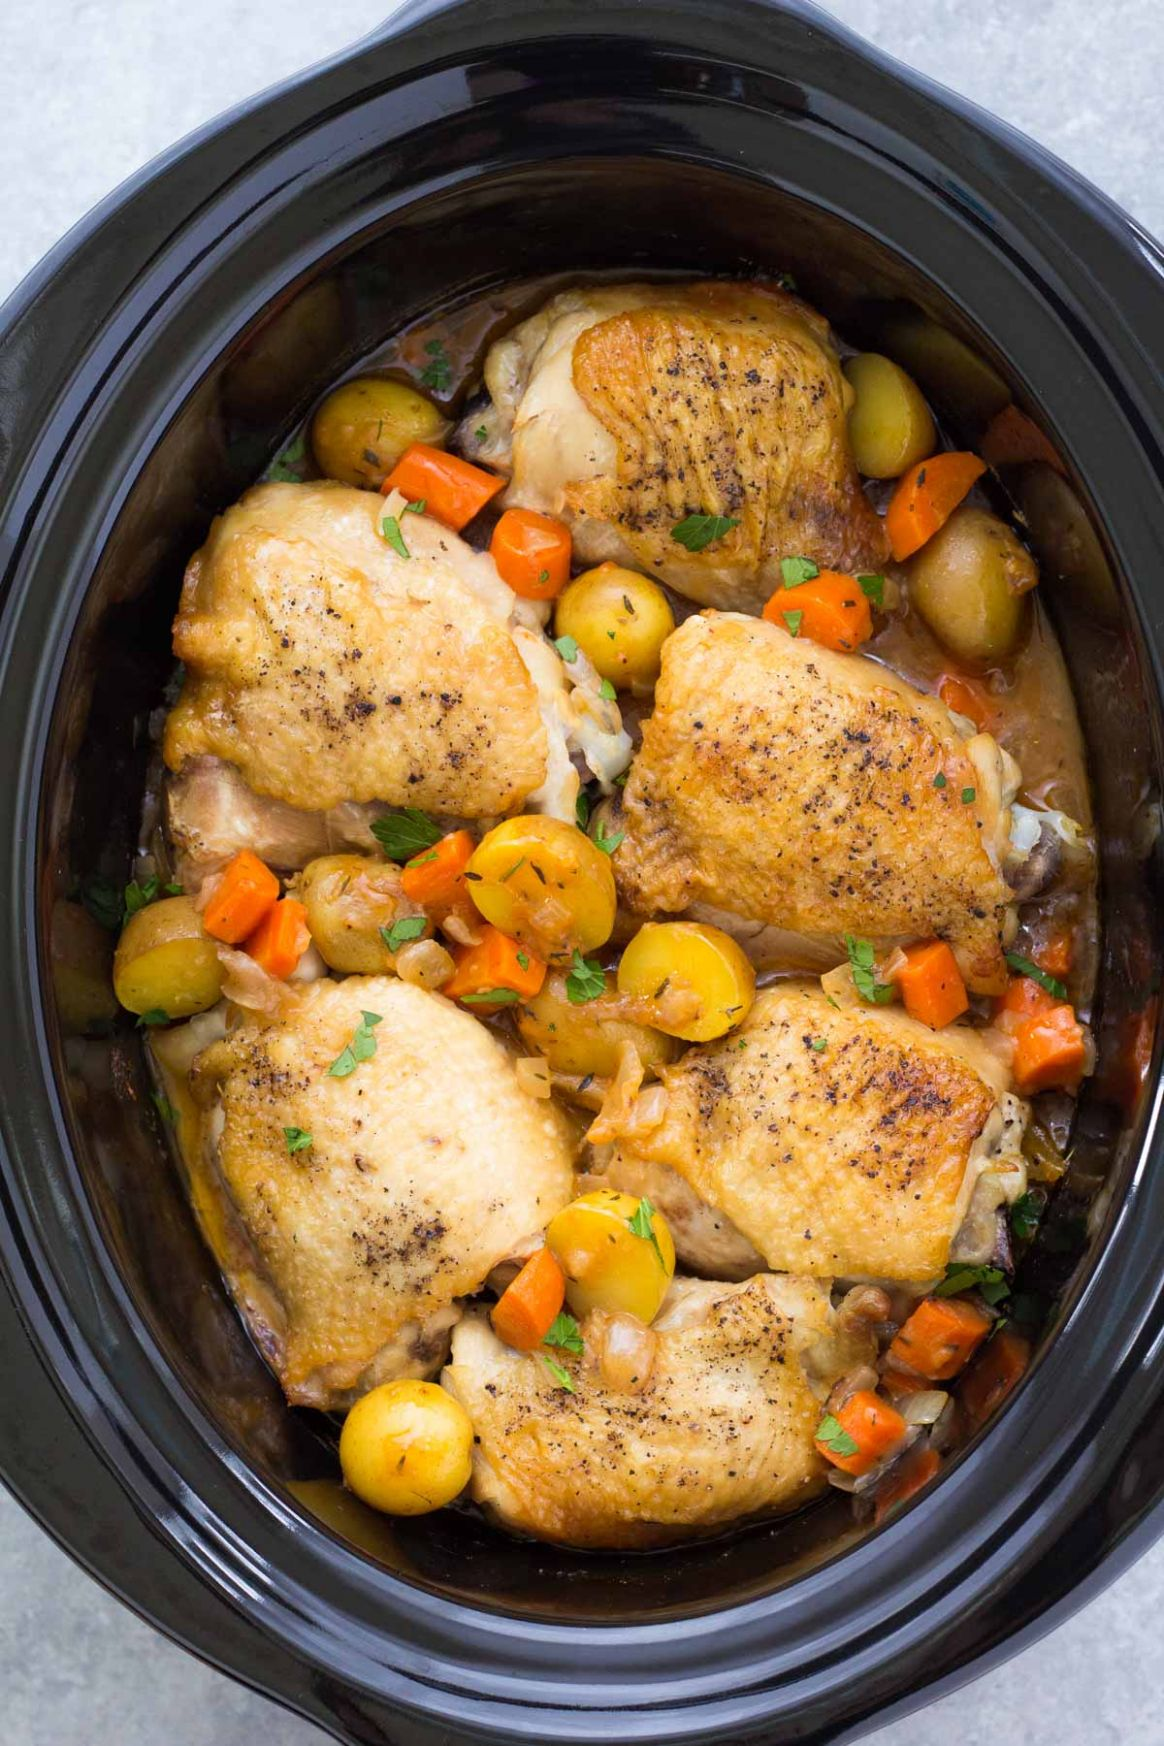 Crockpot Chicken and Potatoes